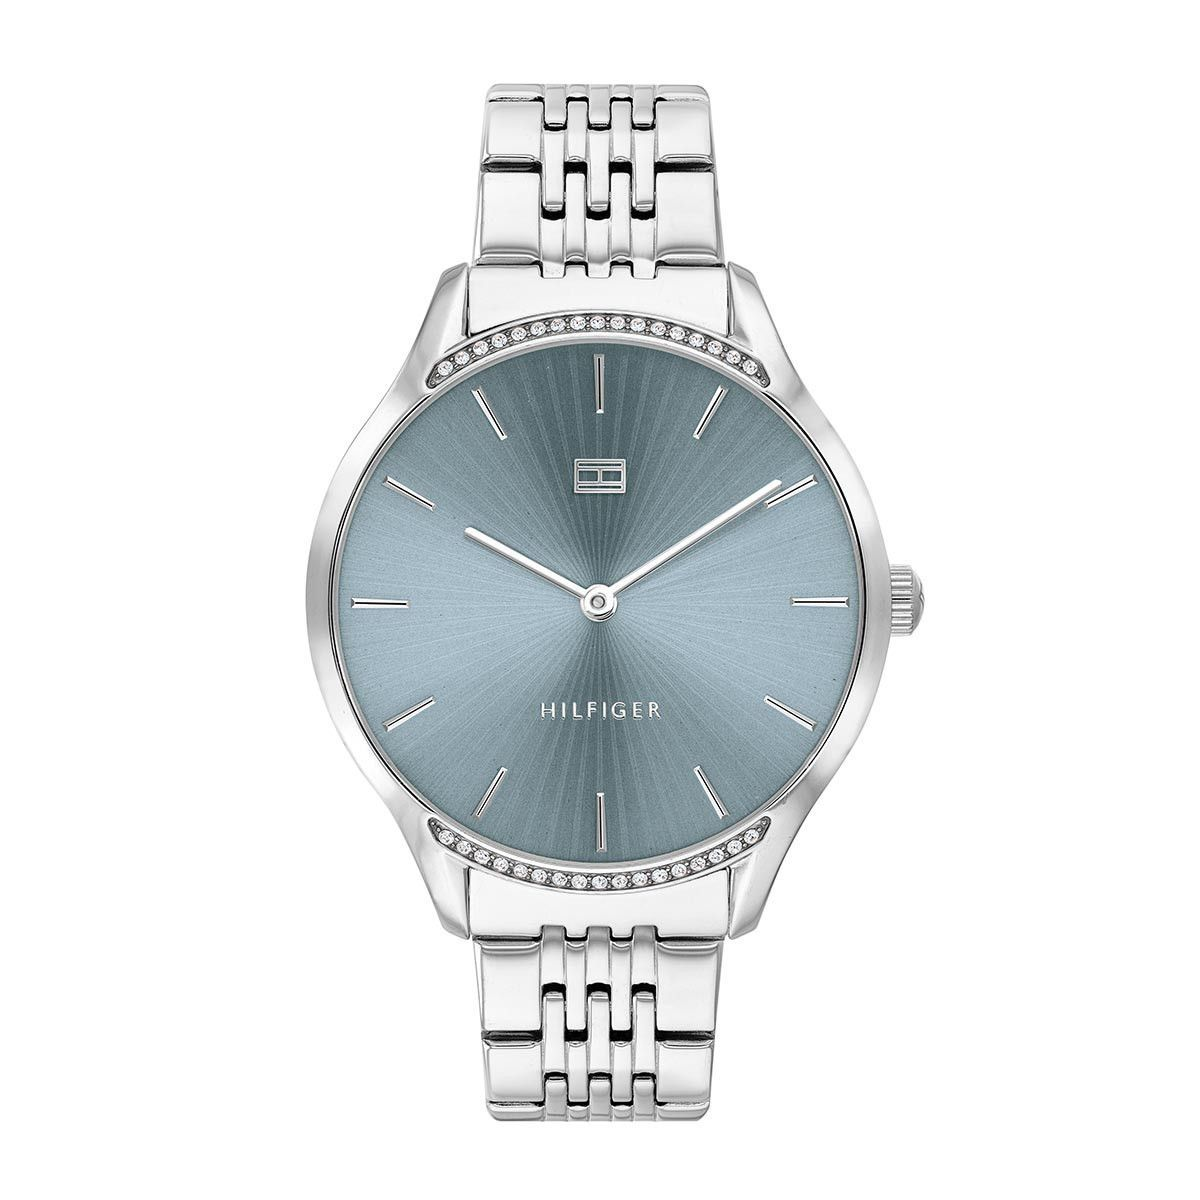 Tommy Hilfiger Women Quartz Watch Gray Silver Uhr Uhr Uhren Fossil Uhr Damenuhren Daniel Wellington Uhr Herrenuhren Ro In 2020 Womens Watches Rolex Watches Rolex